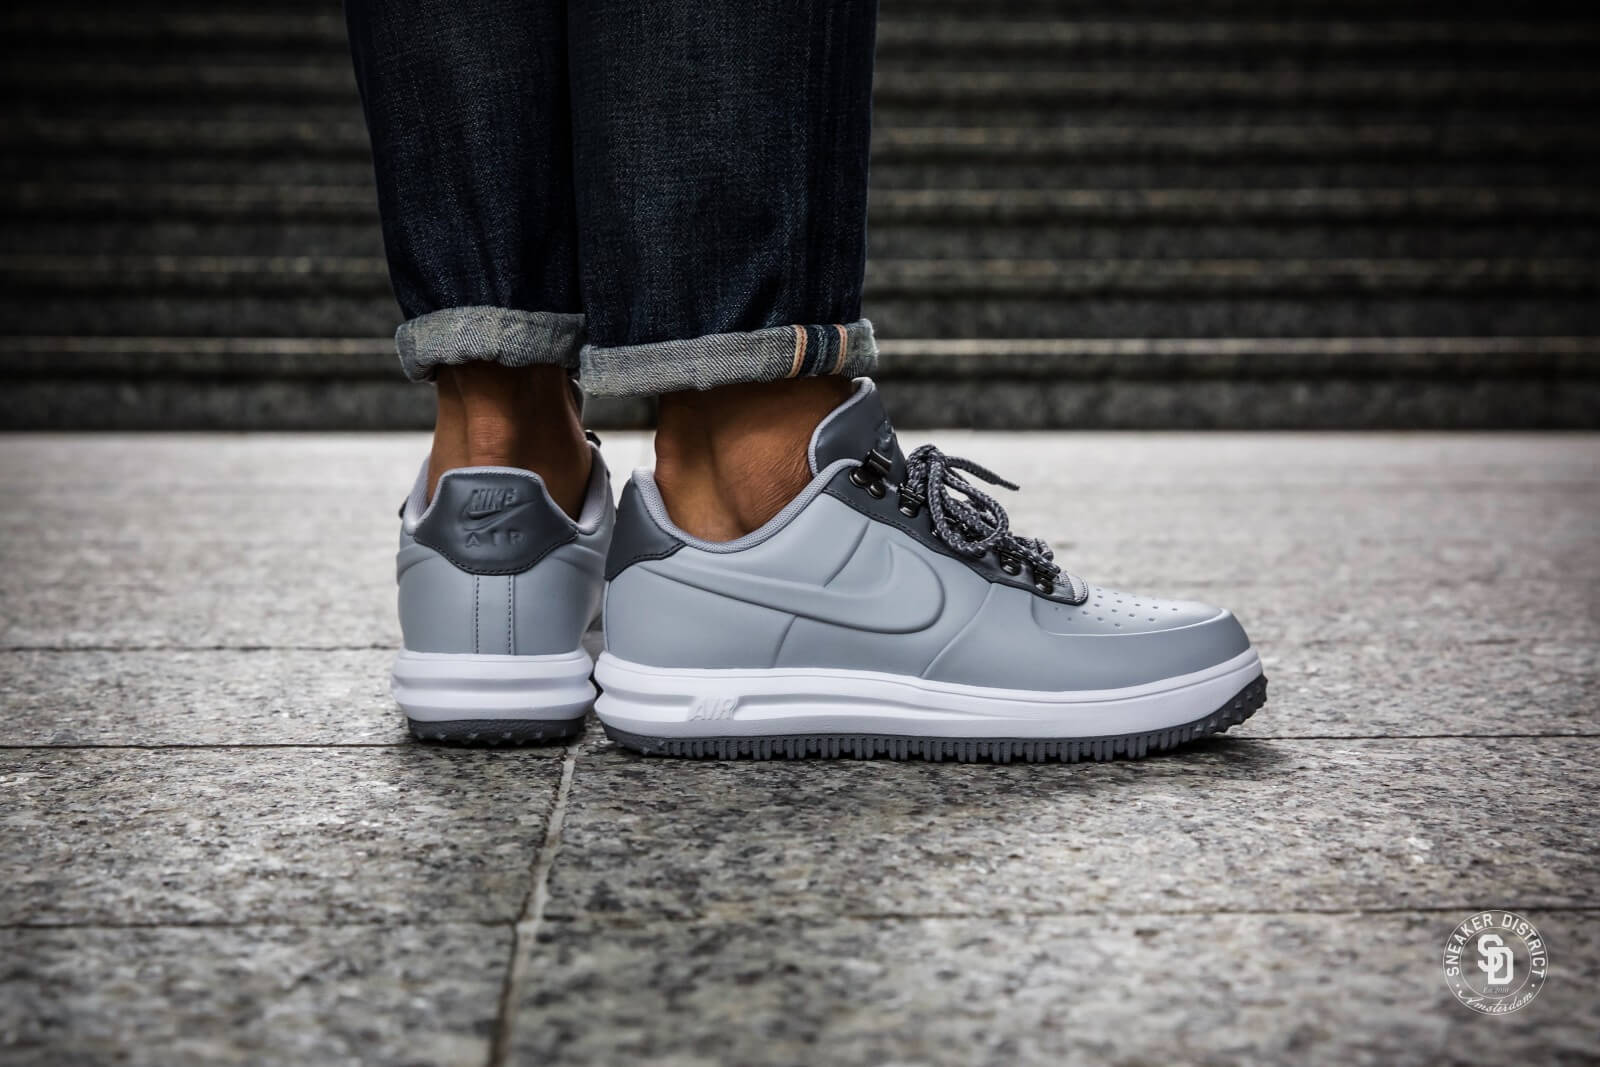 pretty nice hot new products nice cheap Nike Lunar Force 1 Low Duckboot Wolf Grey/Cool Grey sneakers | Gratis  verzendkosten | Sneaker District